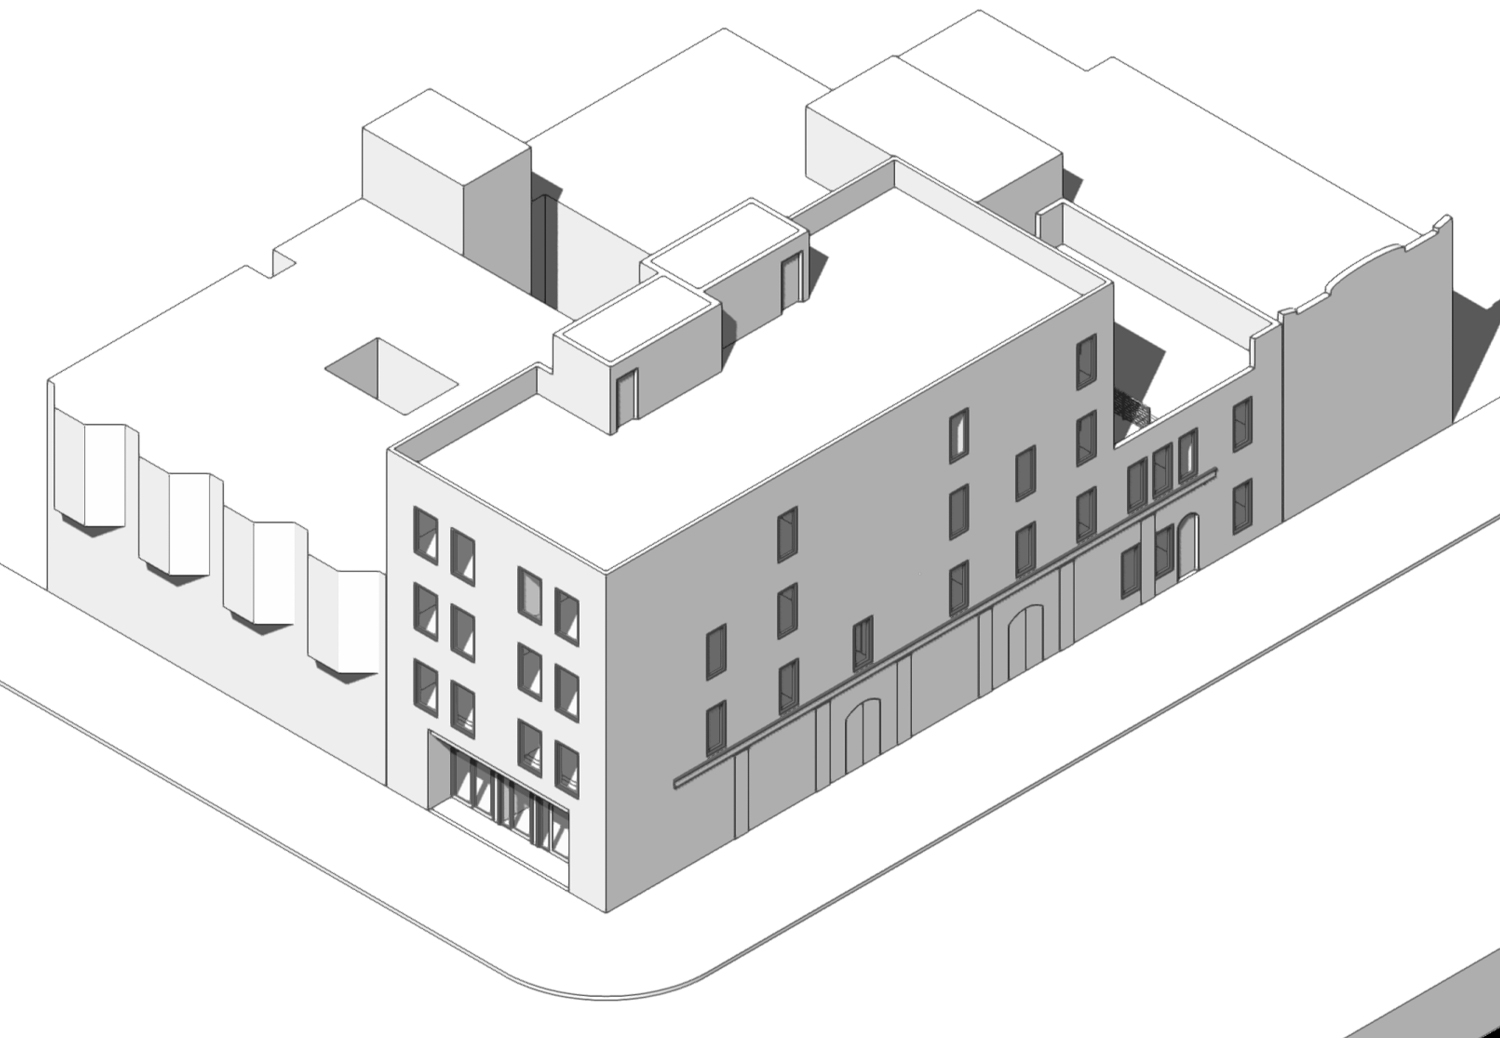 2200 Clement Street, drawing by SIA Consulting